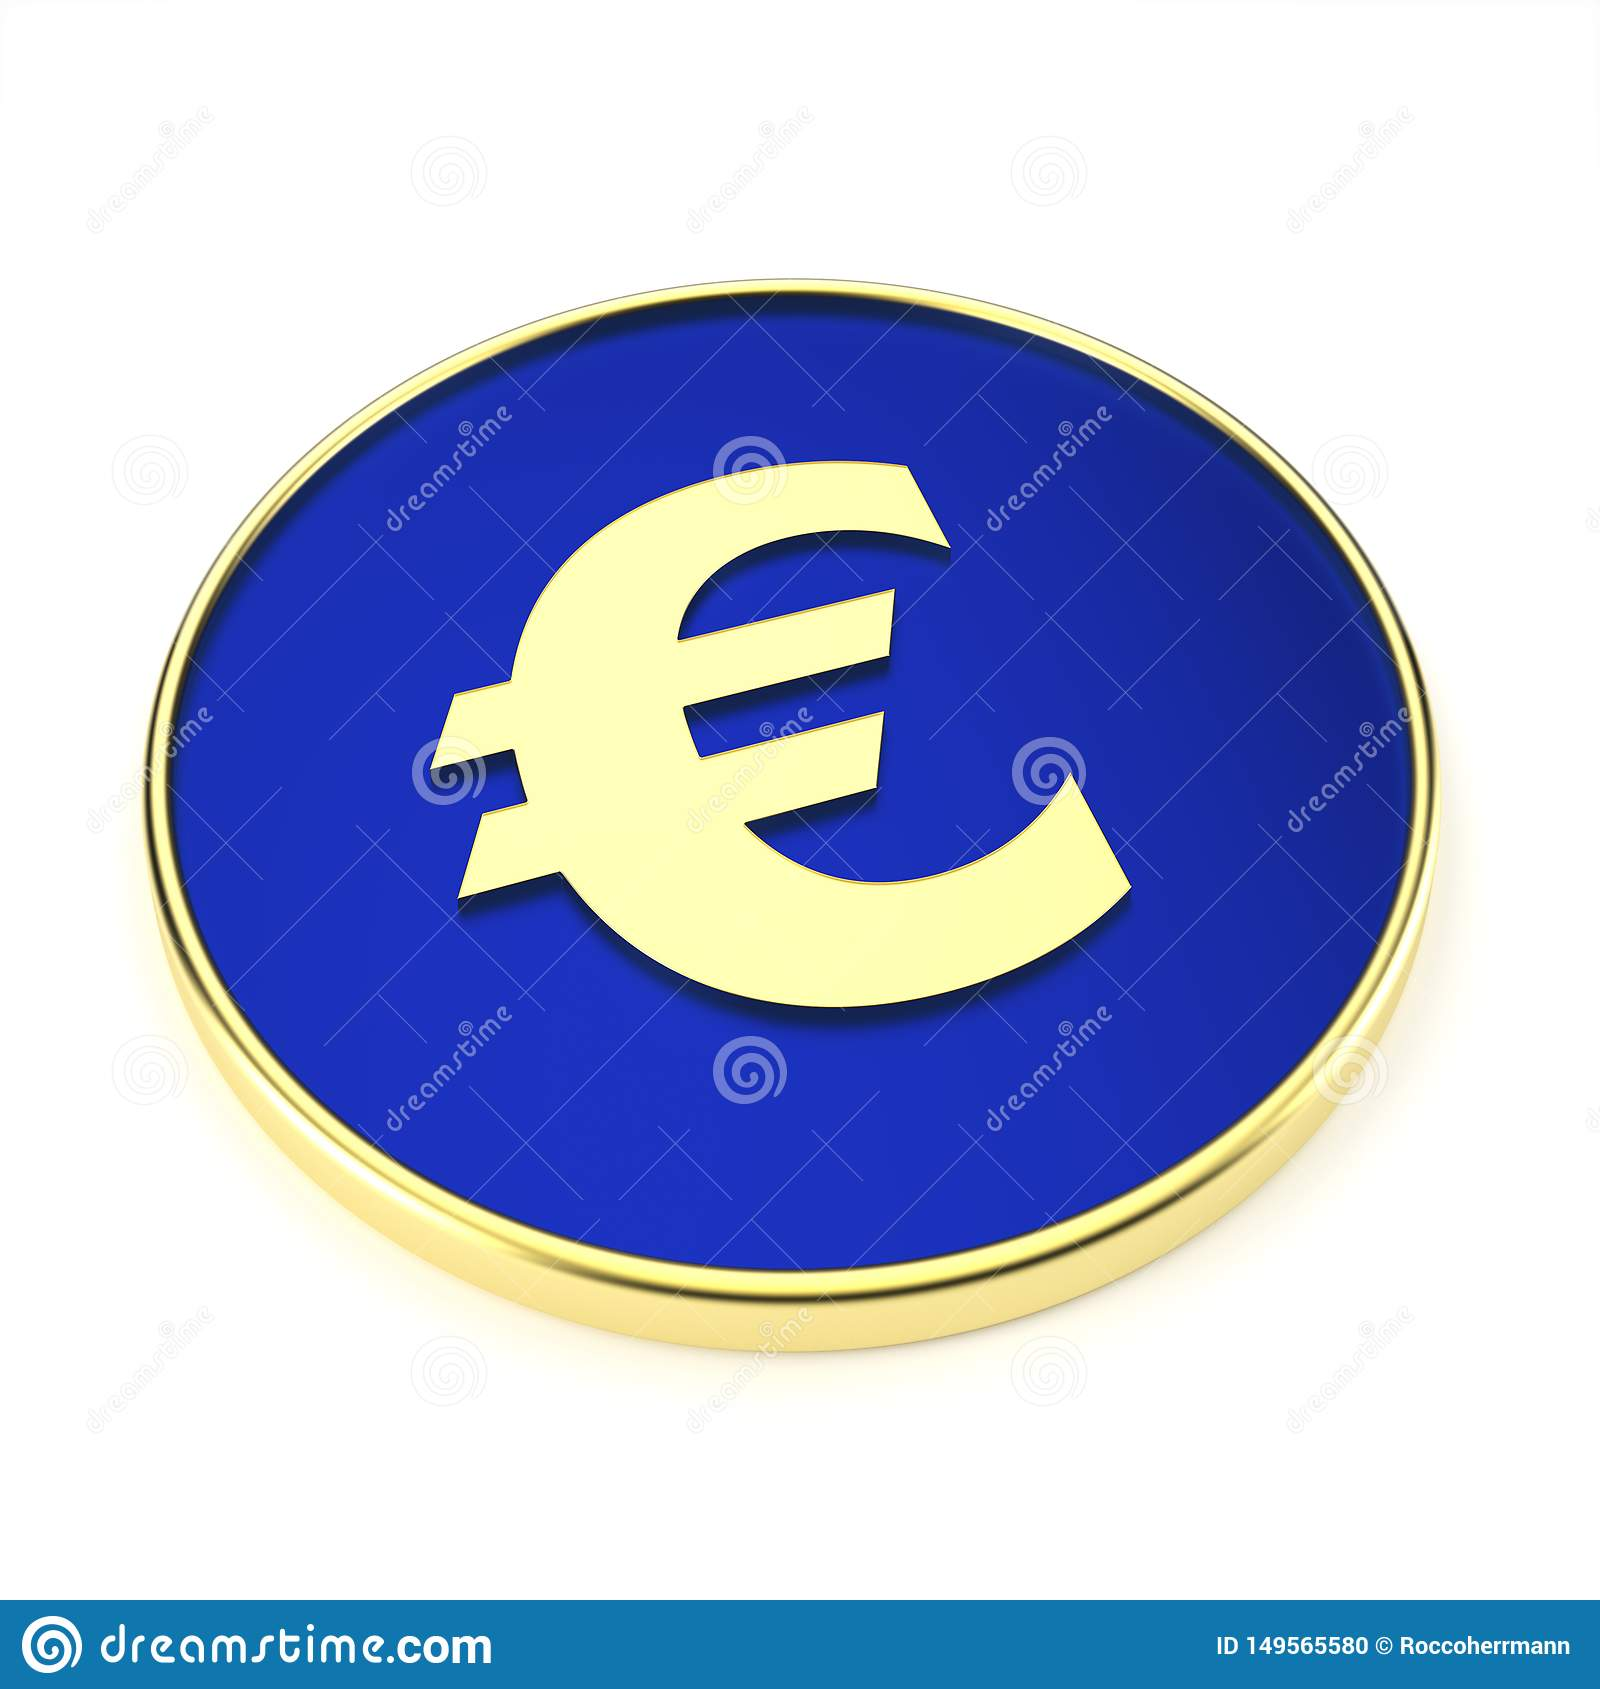 Abstract euro symbol for financial sector - Illustration